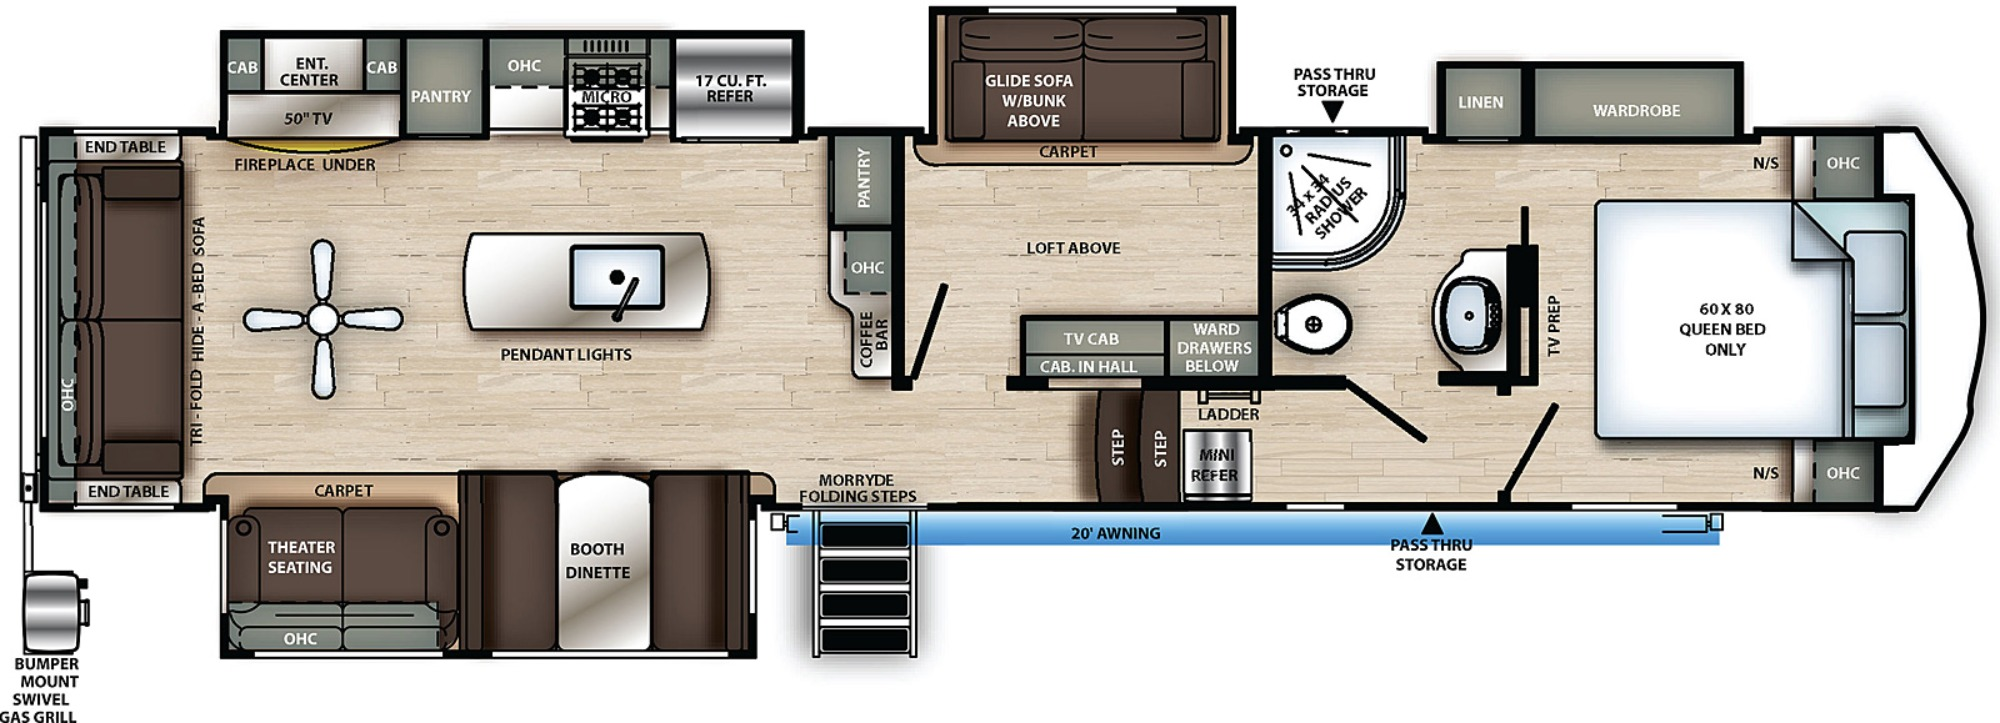 View Floor Plan for 2021 FOREST RIVER SANDPIPER C-CLASS 3660MB